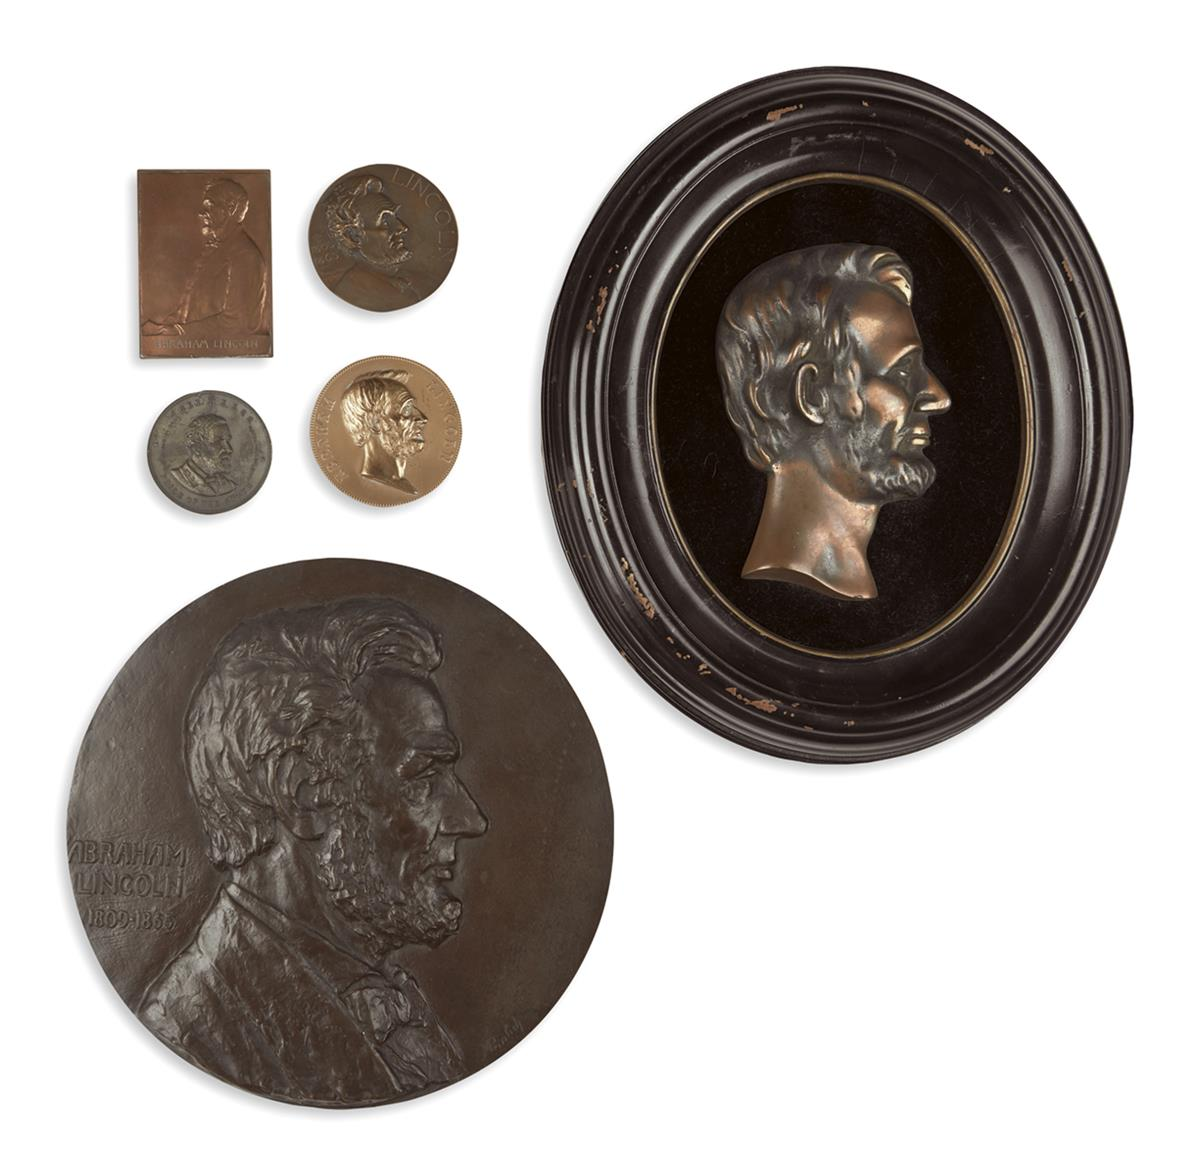 (REALIA)-Group-of-16-Lincoln-related-medallions